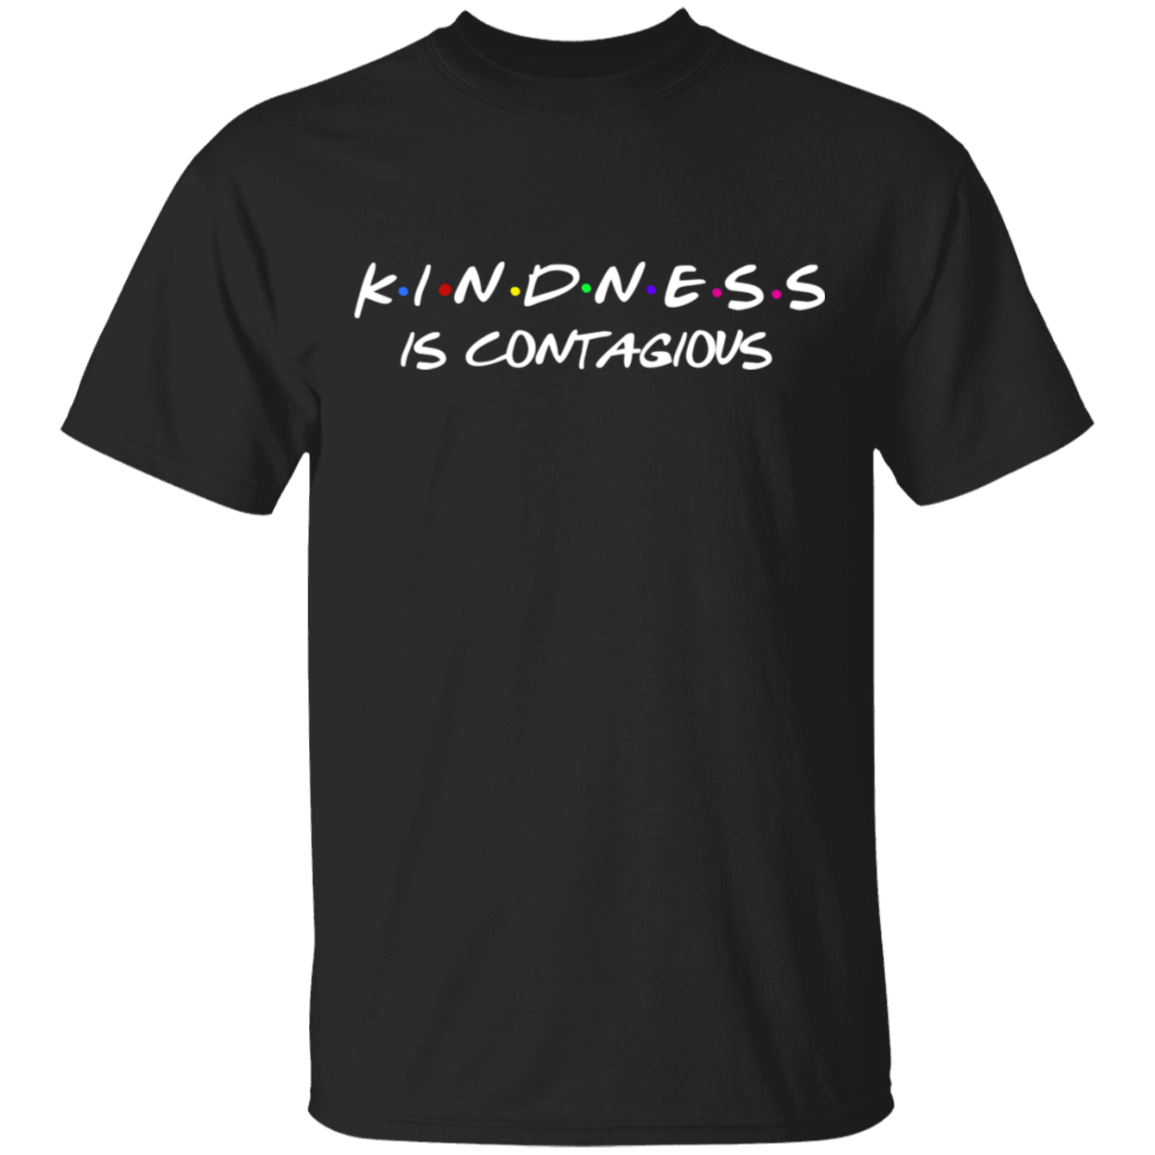 Kindness is contagious .  T-Shirt